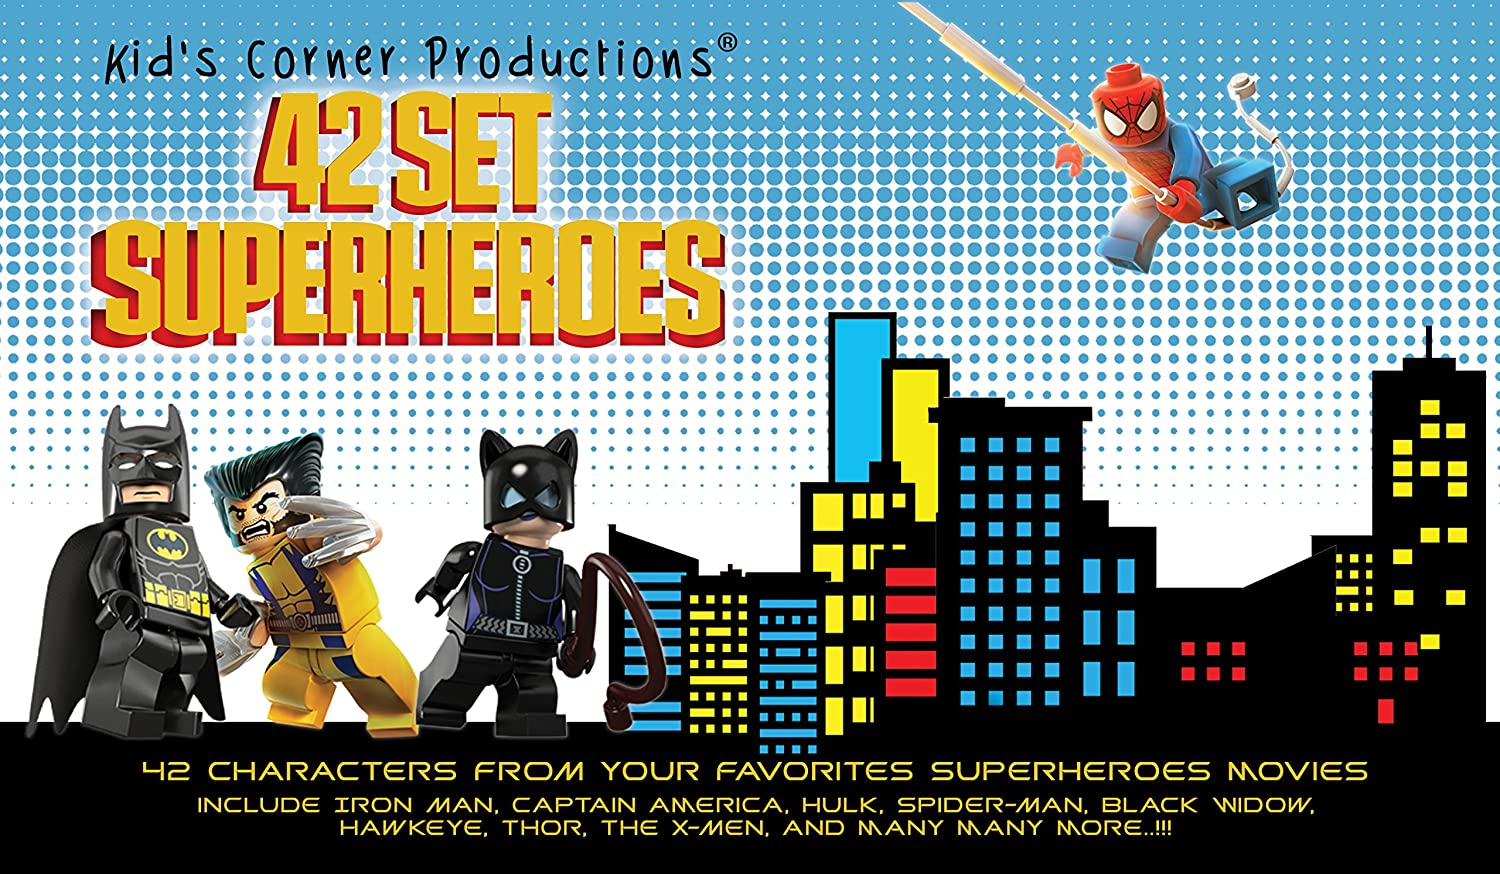 Amazoncom Kids Corner Productions Super Heroes Lego Figures - 18 then and now photos of your favourite on screen superheroes